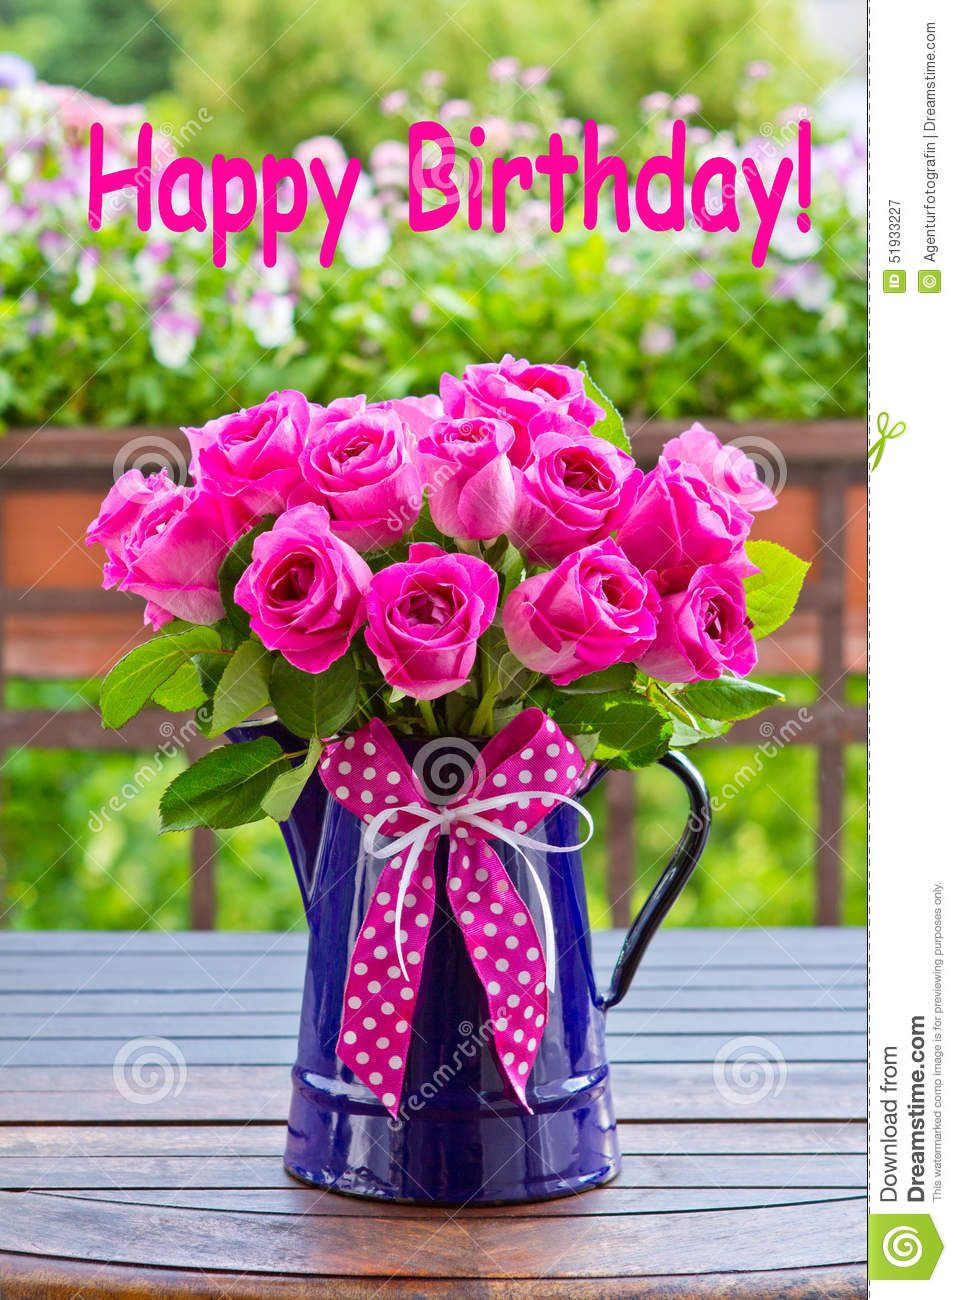 Pin By Olivia Jagar On Flowers Pinterest Happy Birthday Pink